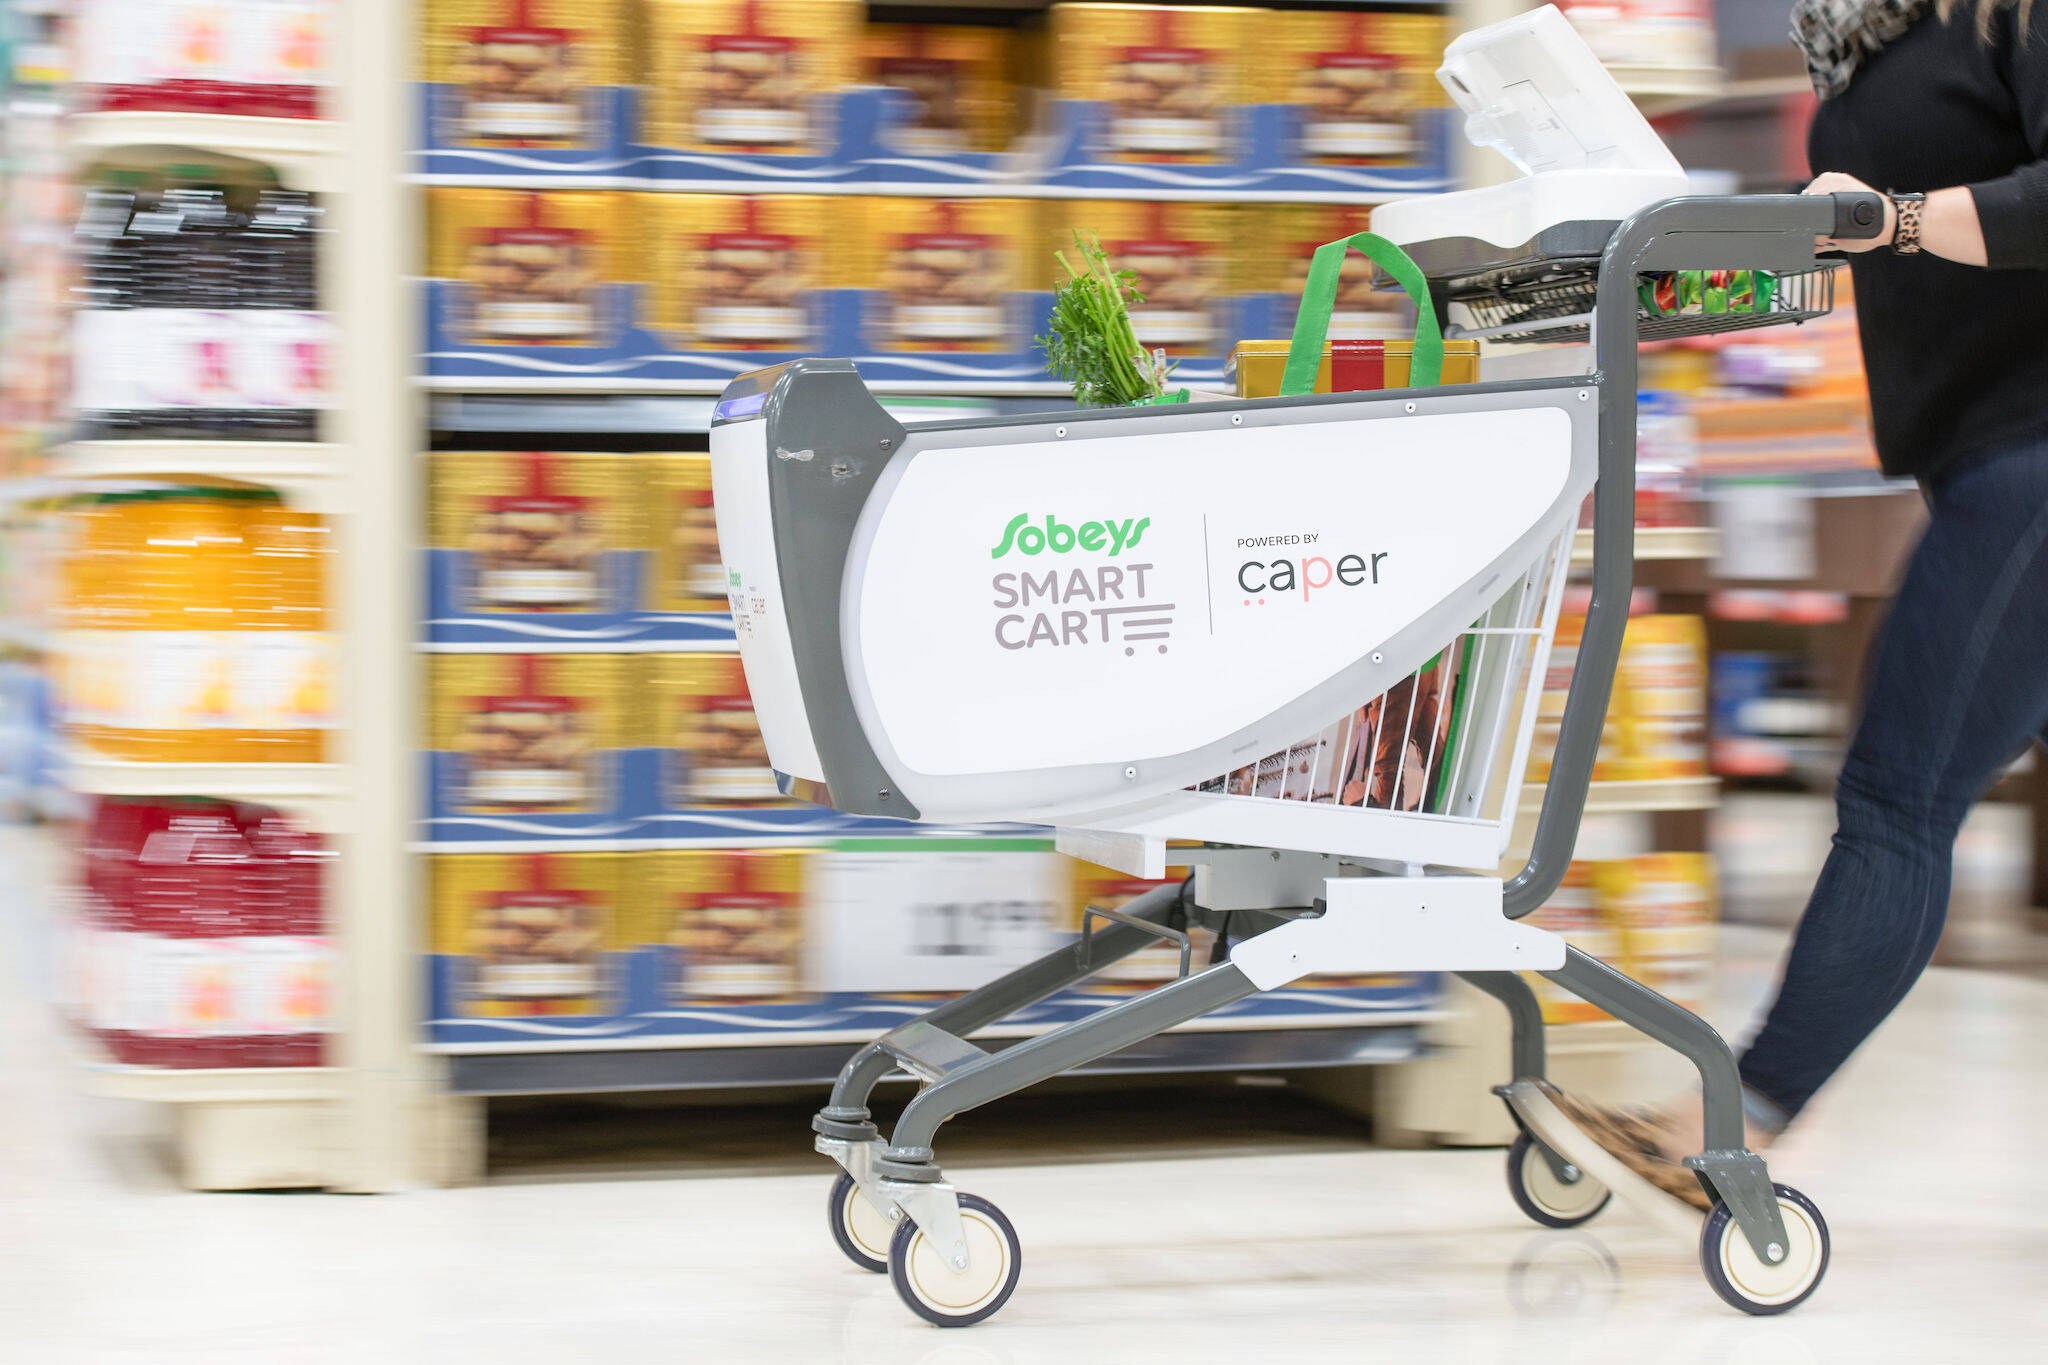 sobeys smart cart